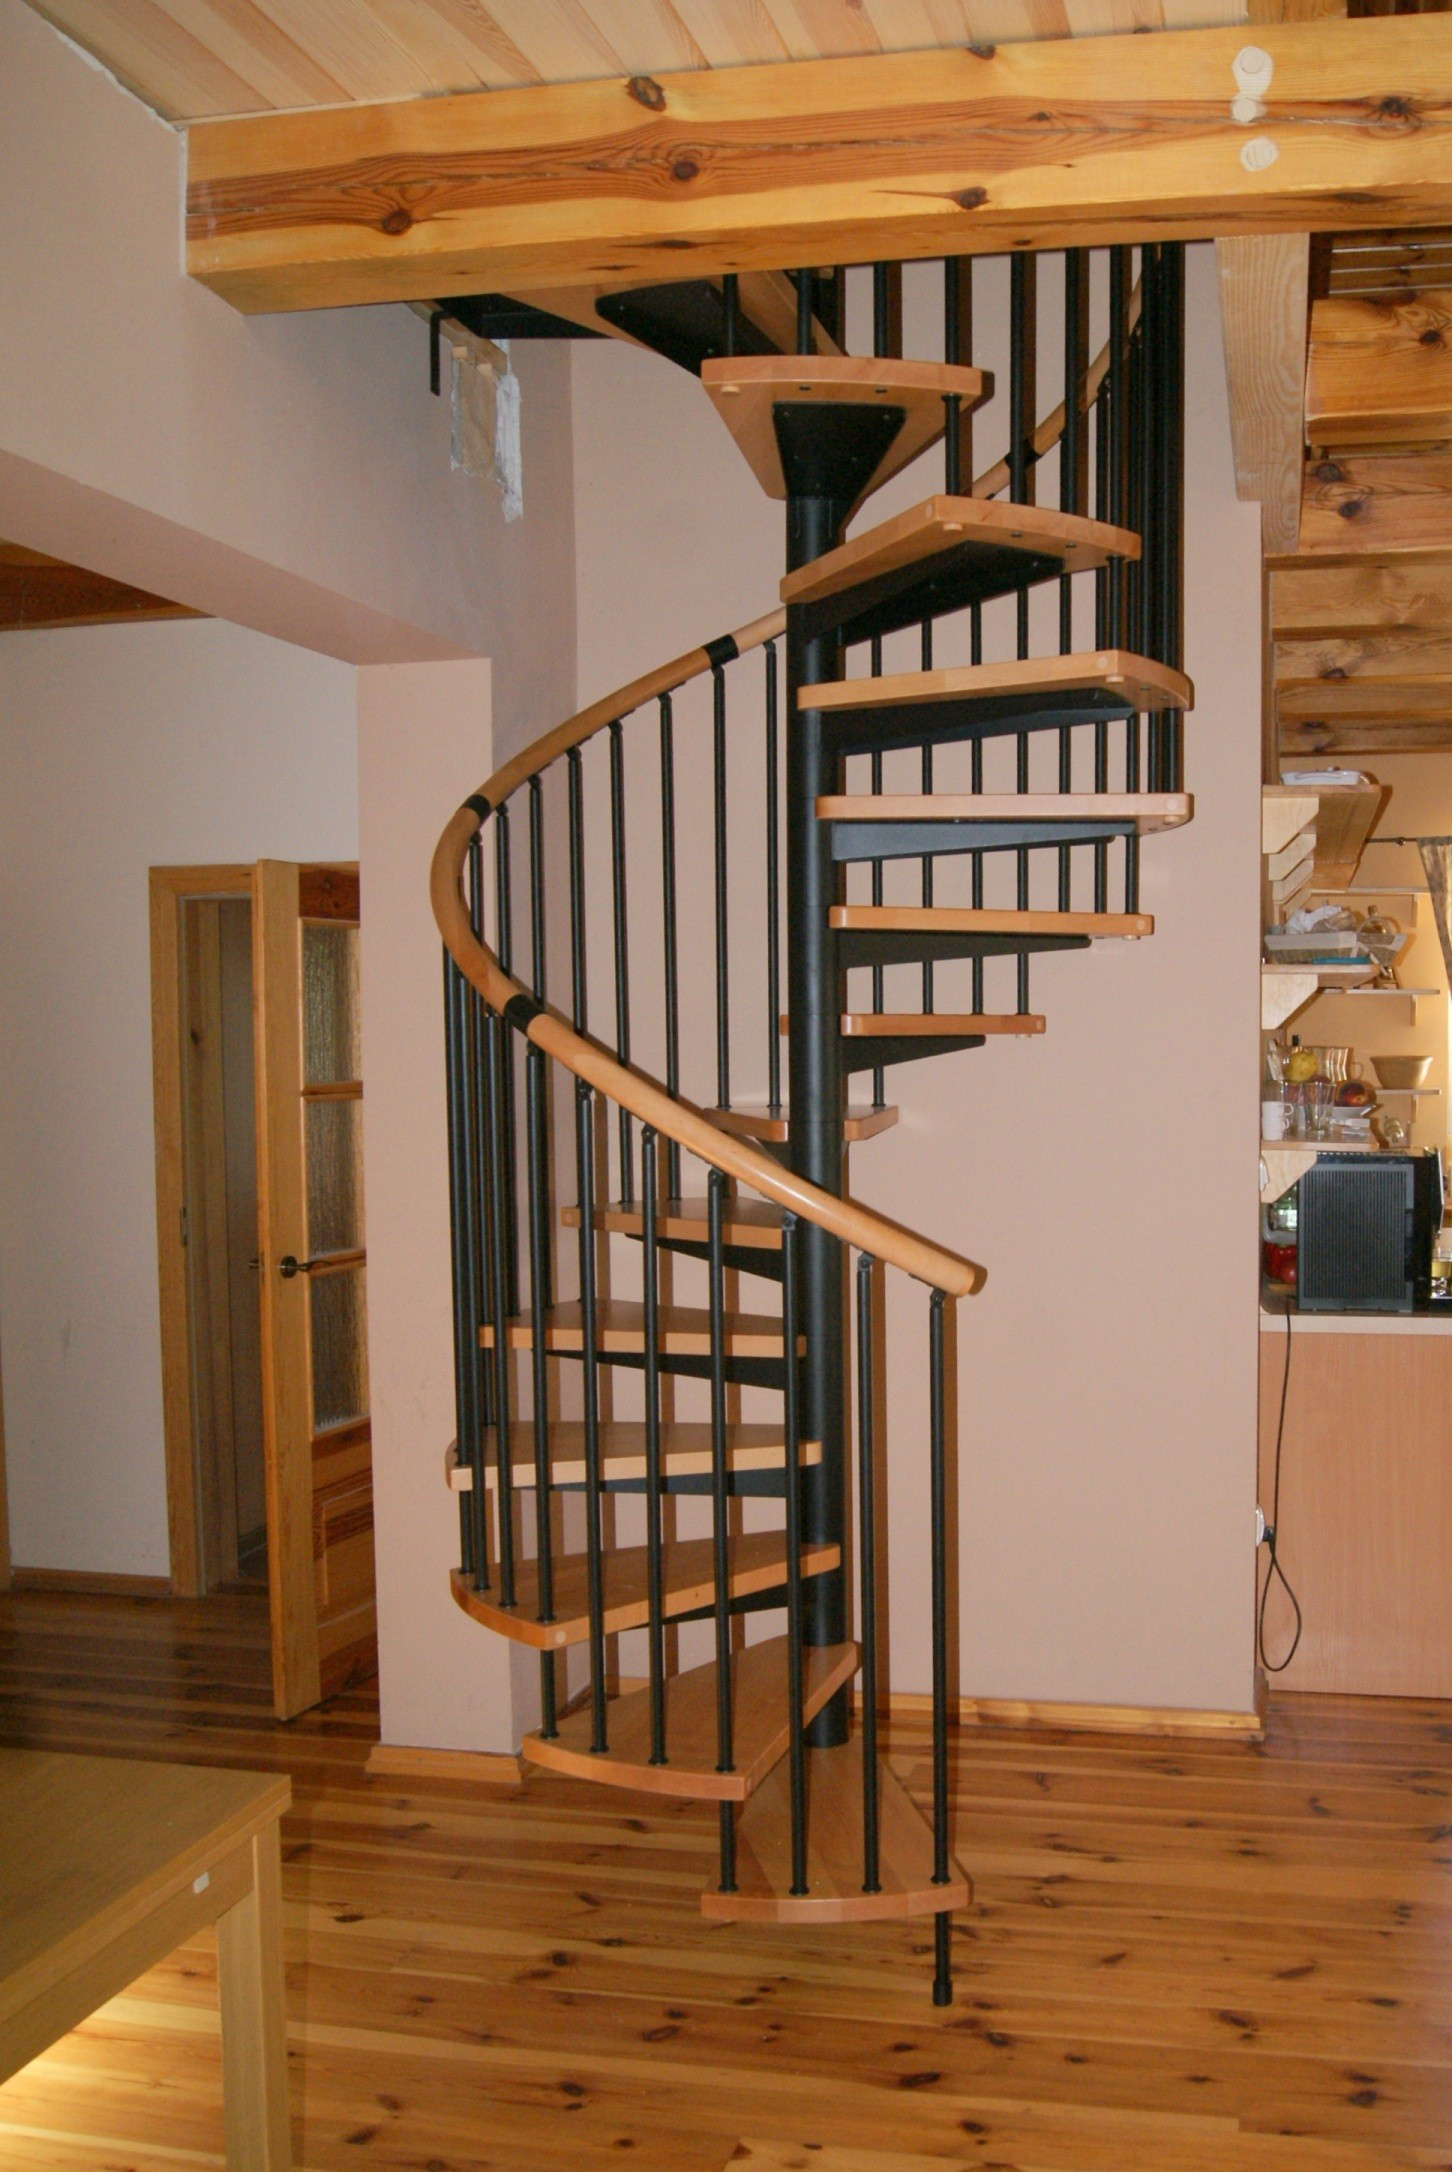 Stairs Hardwood Flooring Cost Of Stairs Winding Duda Model Oslo 02 S 110 Cm Schody24 Net Pl Pertaining to 00p